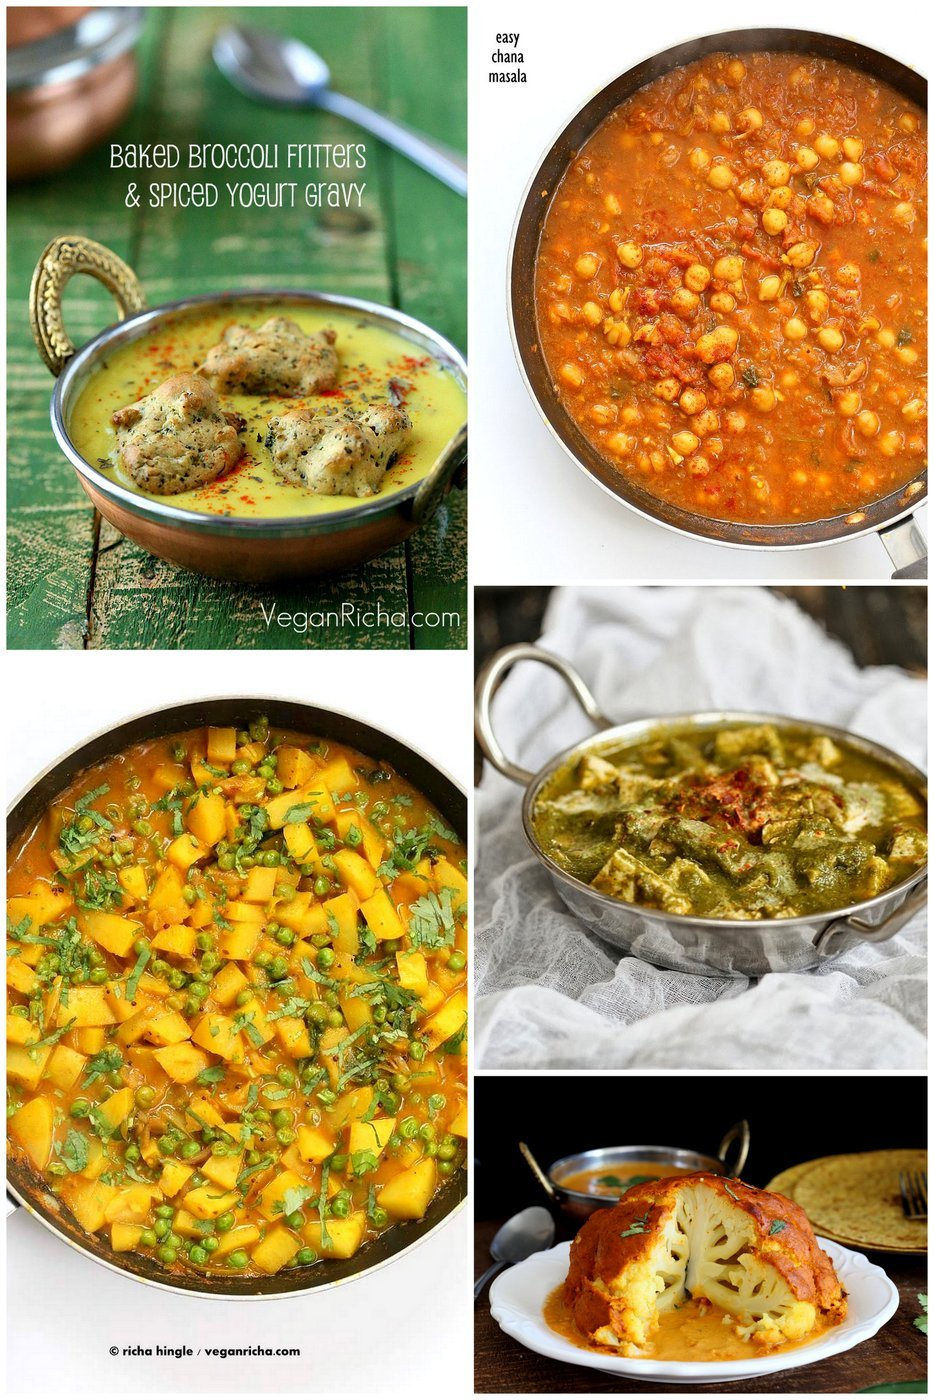 Popular vegan indian curries entrees recipes vegan richa popular indian curries and entrees like whote roasted cauliflower bombay potatoes kadhi pasanda forumfinder Images